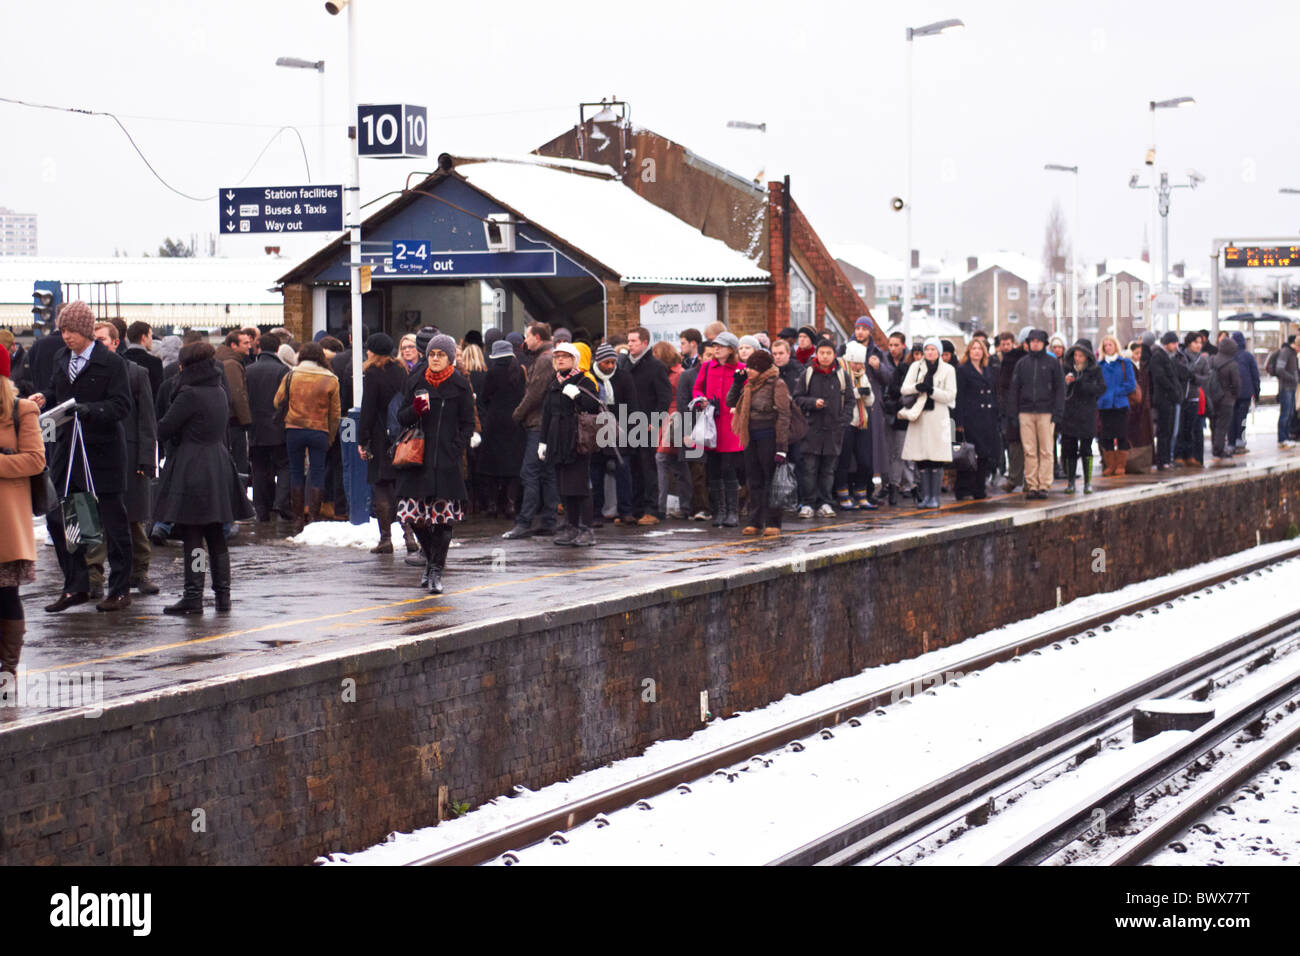 LONDON, UK. Commuters wait at Clapham Junction, the UK's busiest station, for heavily delayed trains to Waterloo. - Stock Image